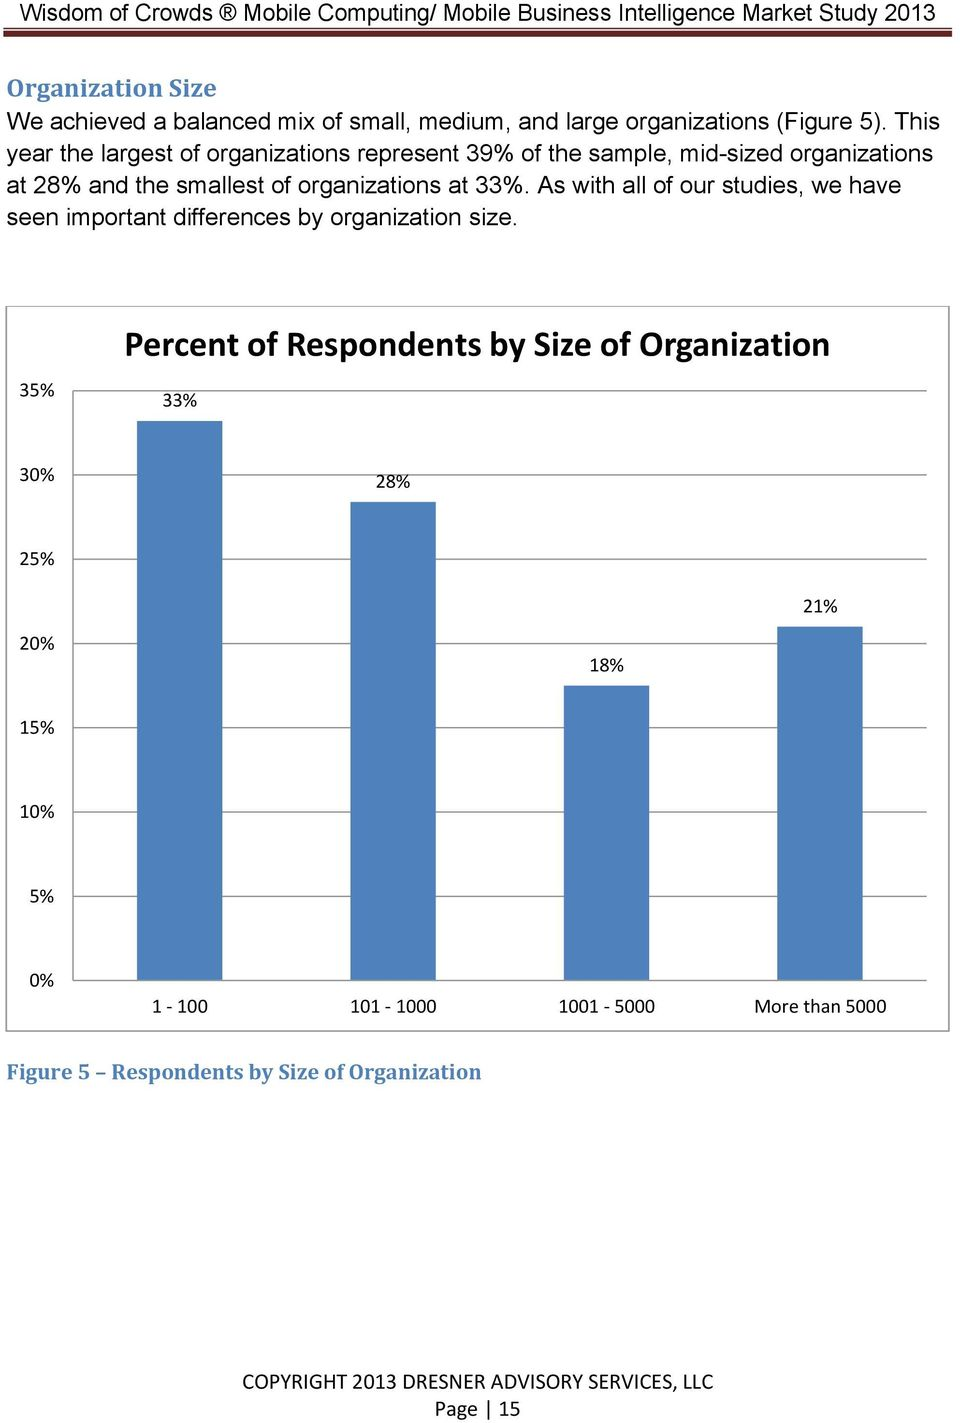 organizations at 33%. As with all of our studies, we have seen important differences by organization size.